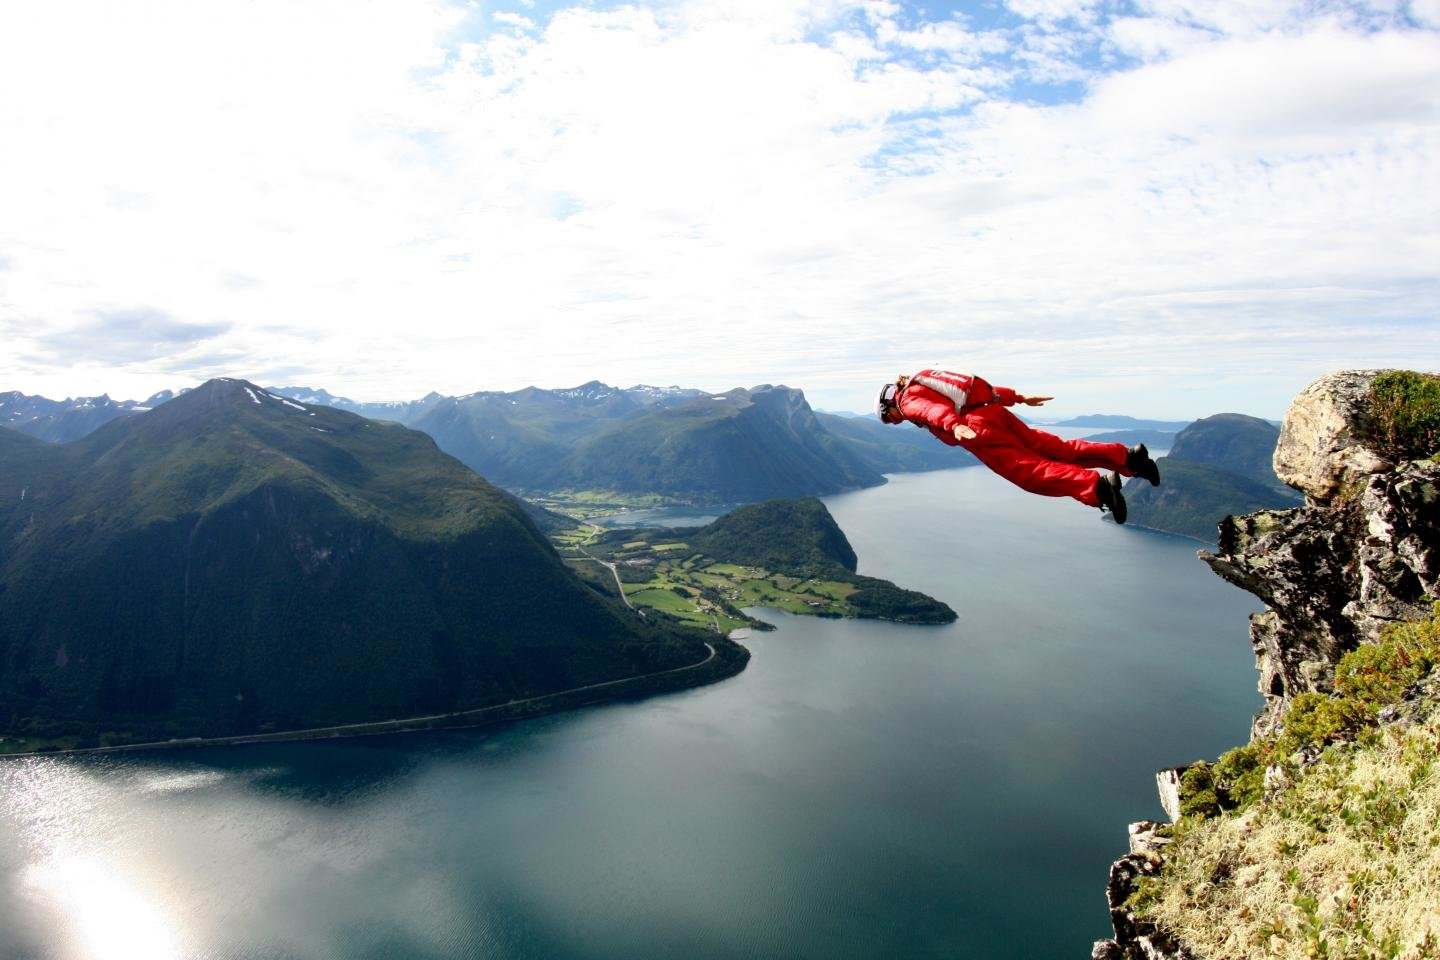 Awesome Base Jumping free background ID:69677 for hd 1440x960 desktop